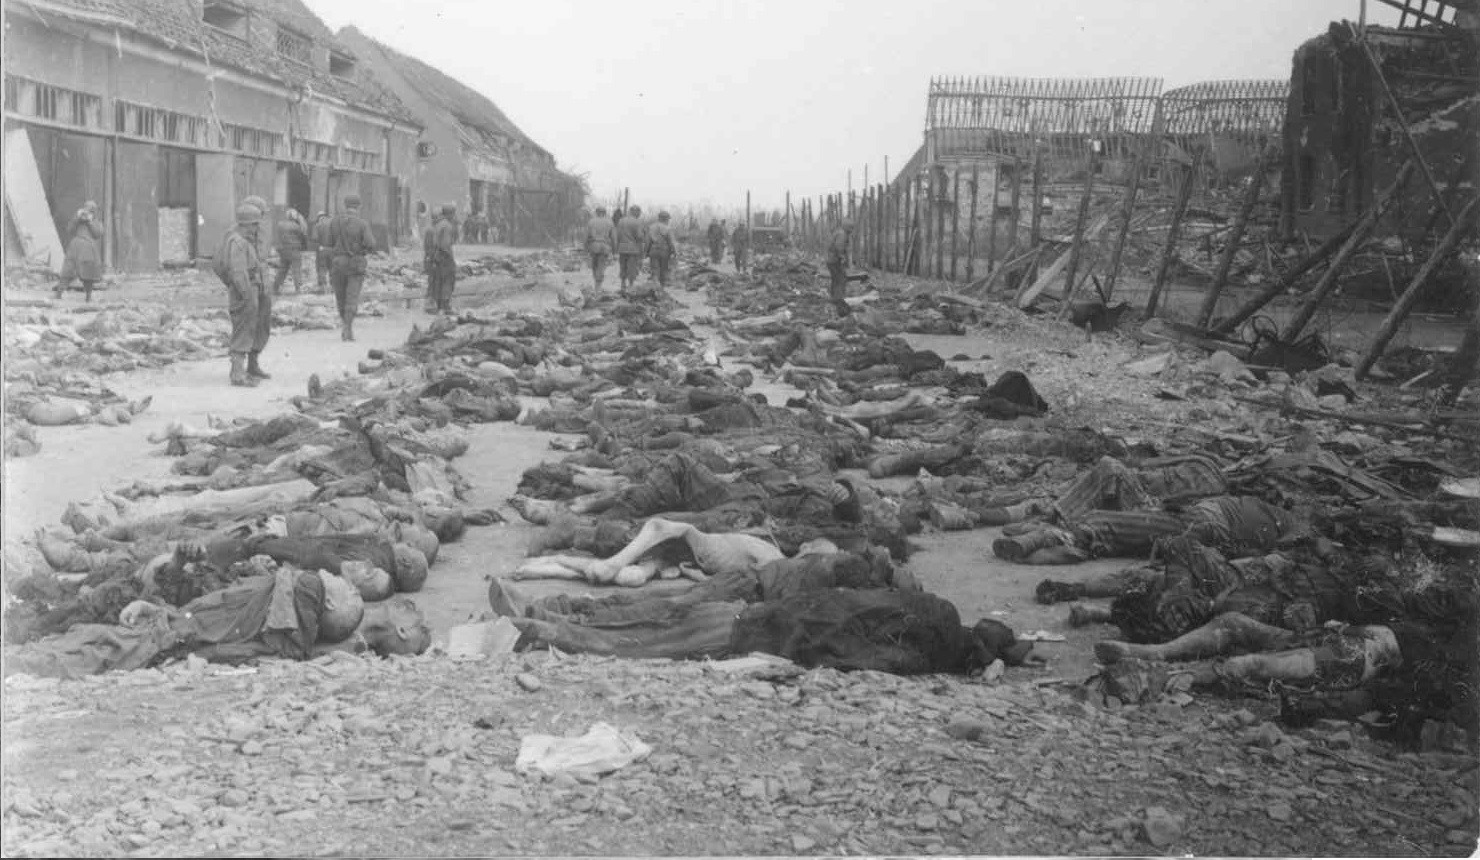 One of the five photos removed from the photo album depicts rows of deceased prisoners found at a liberated Nazi concentration camp. It is not known exactly which camp is shown, but chronologically following photos taken by Hayes indicate that it was in Germany.